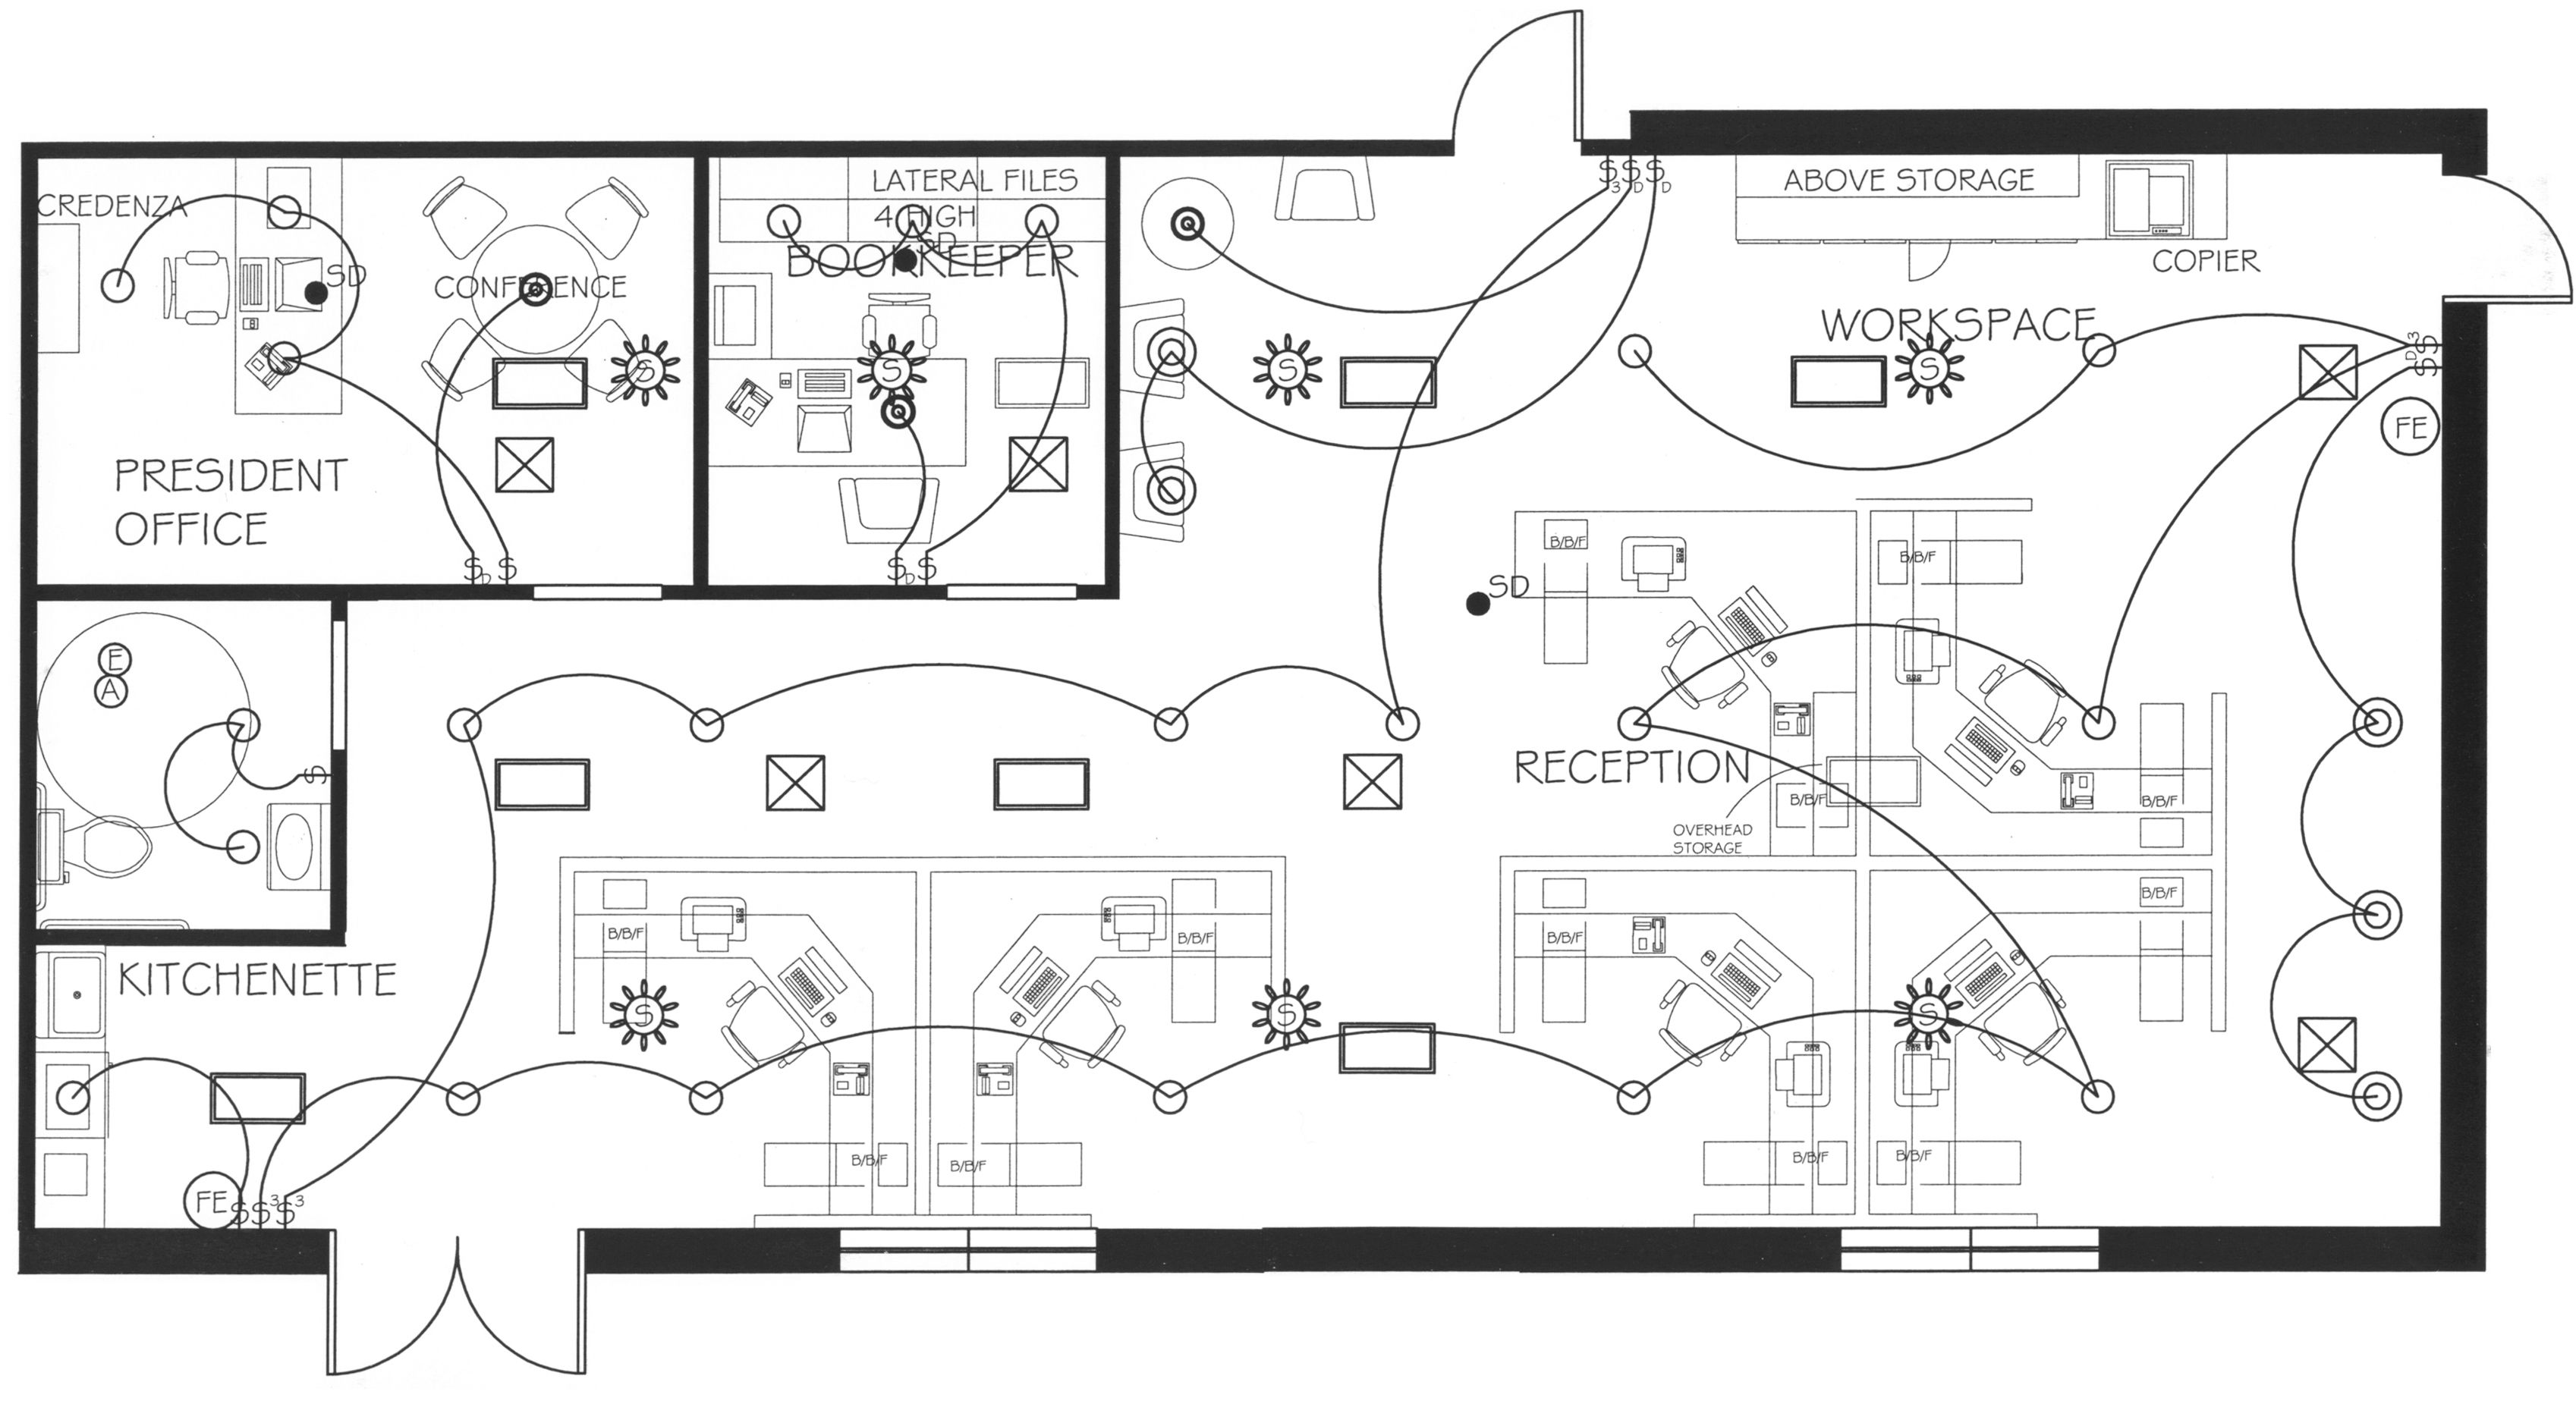 Commercial With Images Electrical Plan Floor Plans